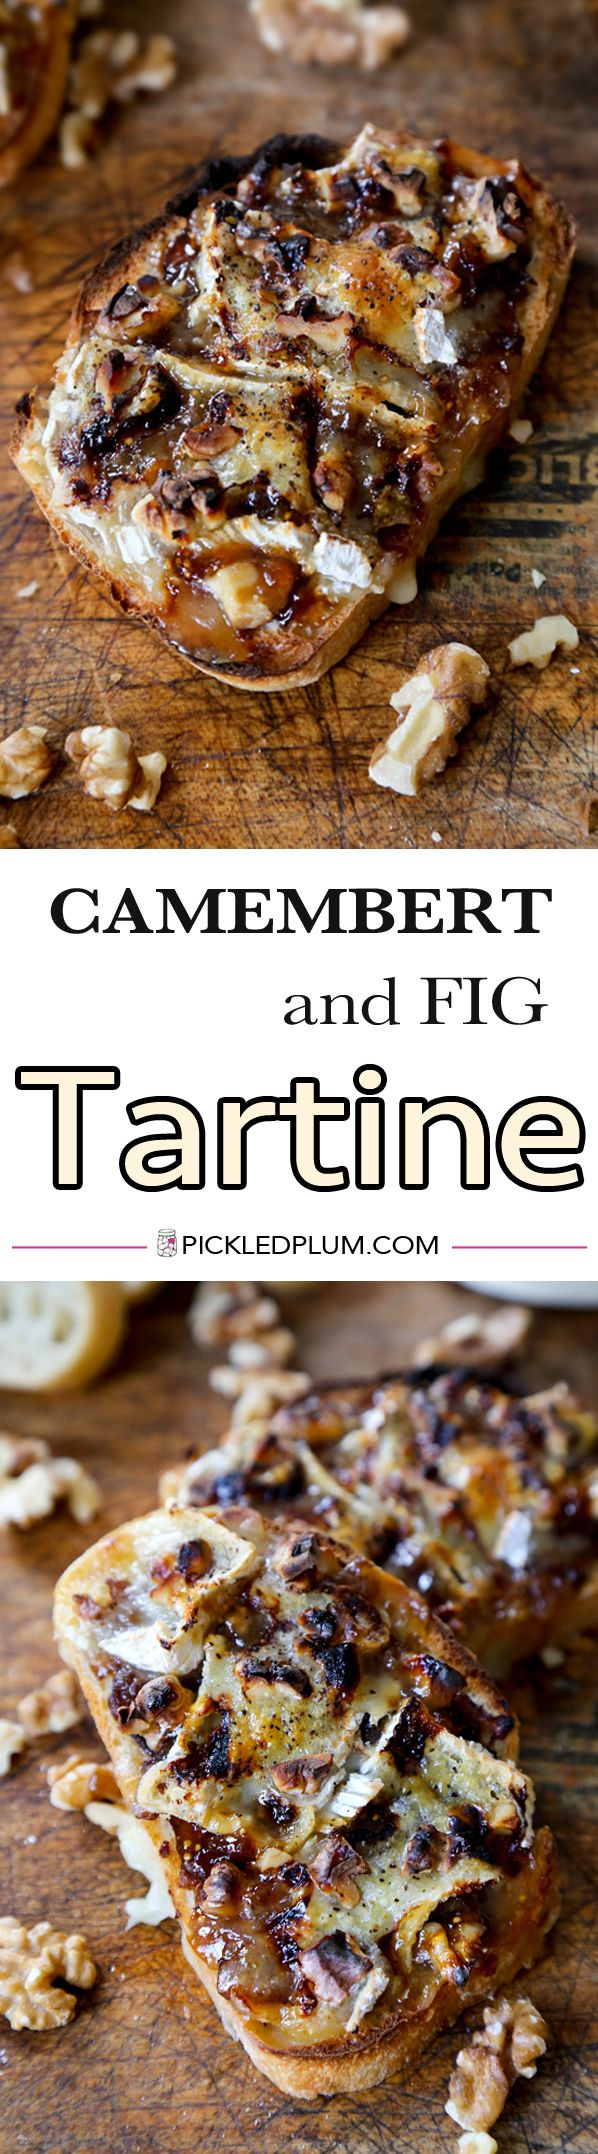 Camembert and Fig Tartine with caramelized onion  Classic French comfort food that  39 s quick and easy to make at home  http   www pickledplum com cheese bread fig recipe